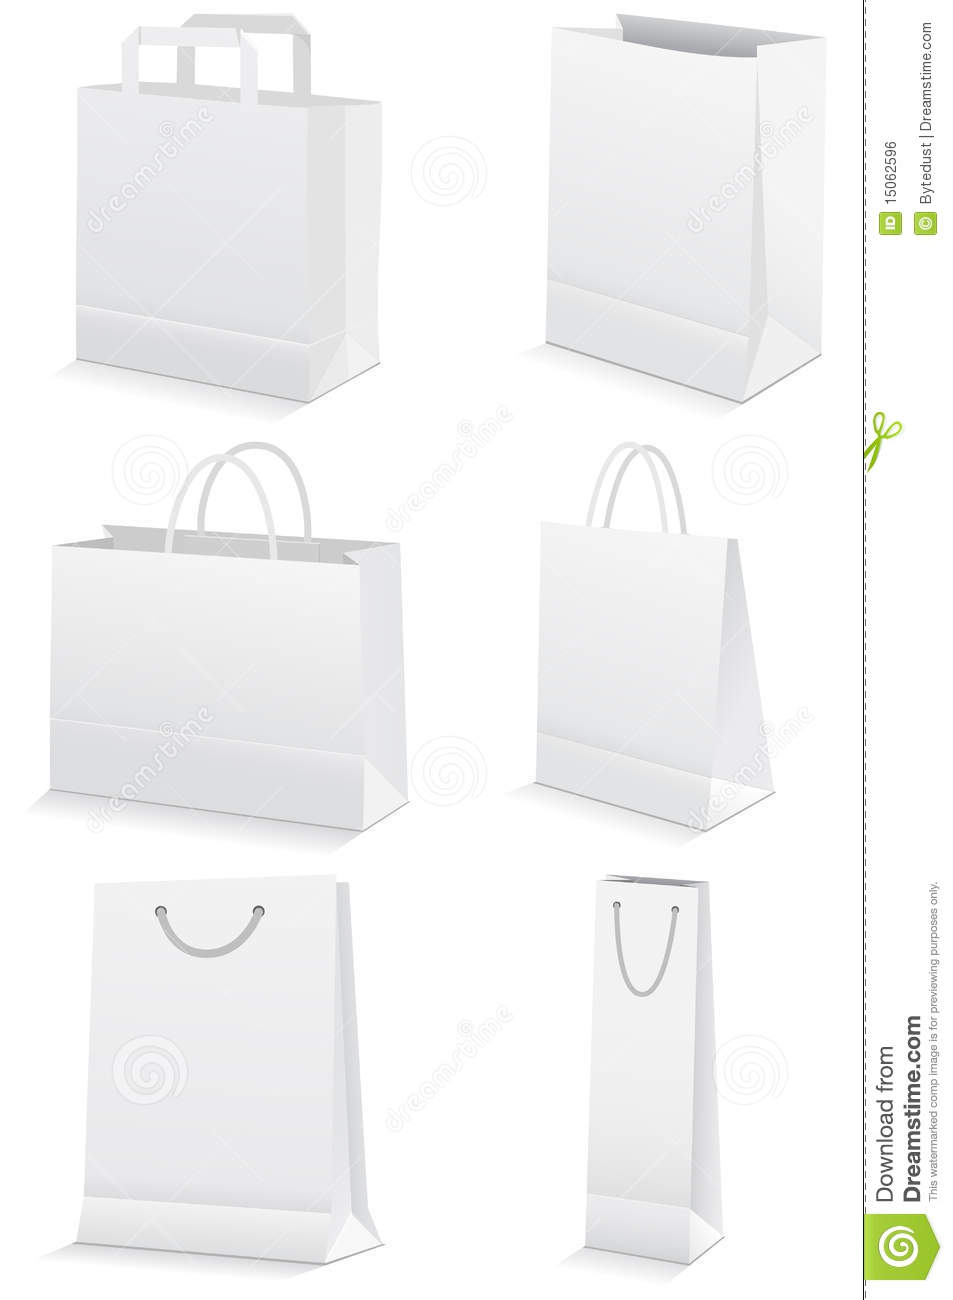 Vector Set Of Blank Paper Shopping Bags. Royalty Free Stock Image ...